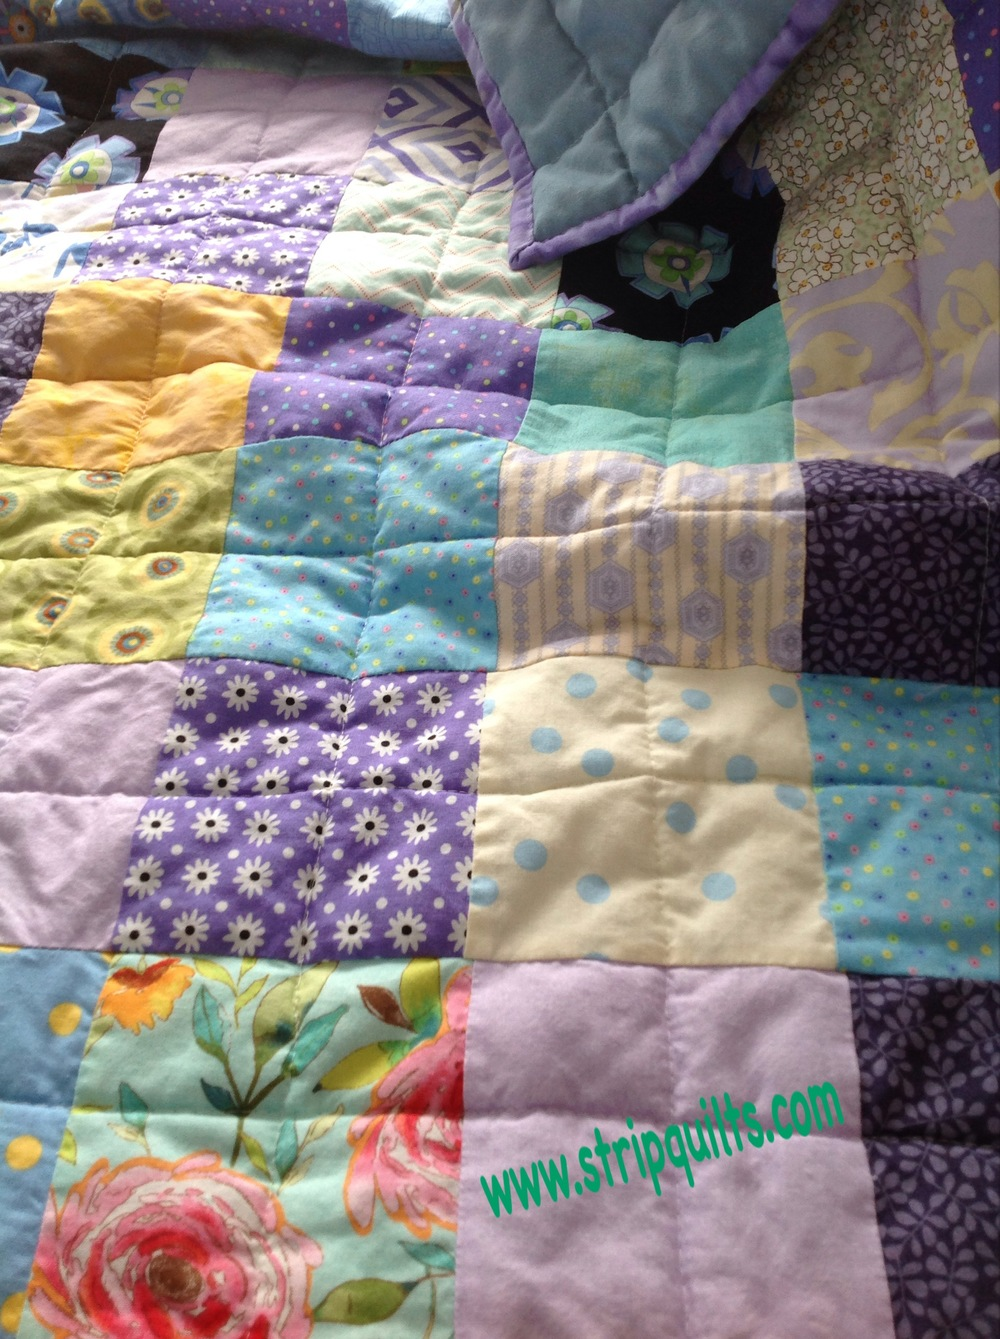 I washed this quilt in cold water and fabric softer anxious to see the soft puckered effect.